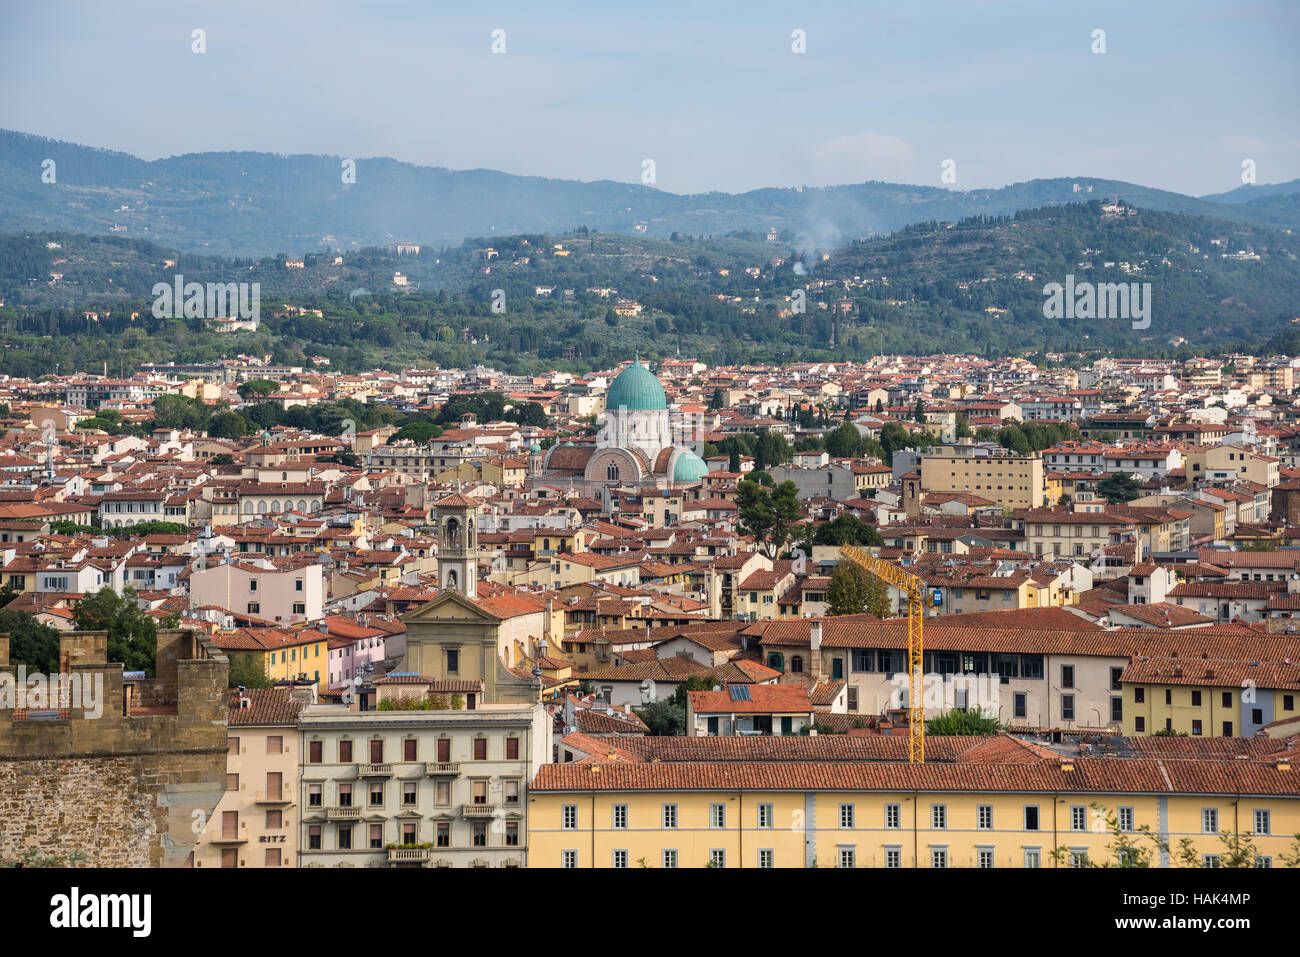 Great Synagogue of Florence inside  panorama of old city, capital of Tuscany region, Italy Stock Photo